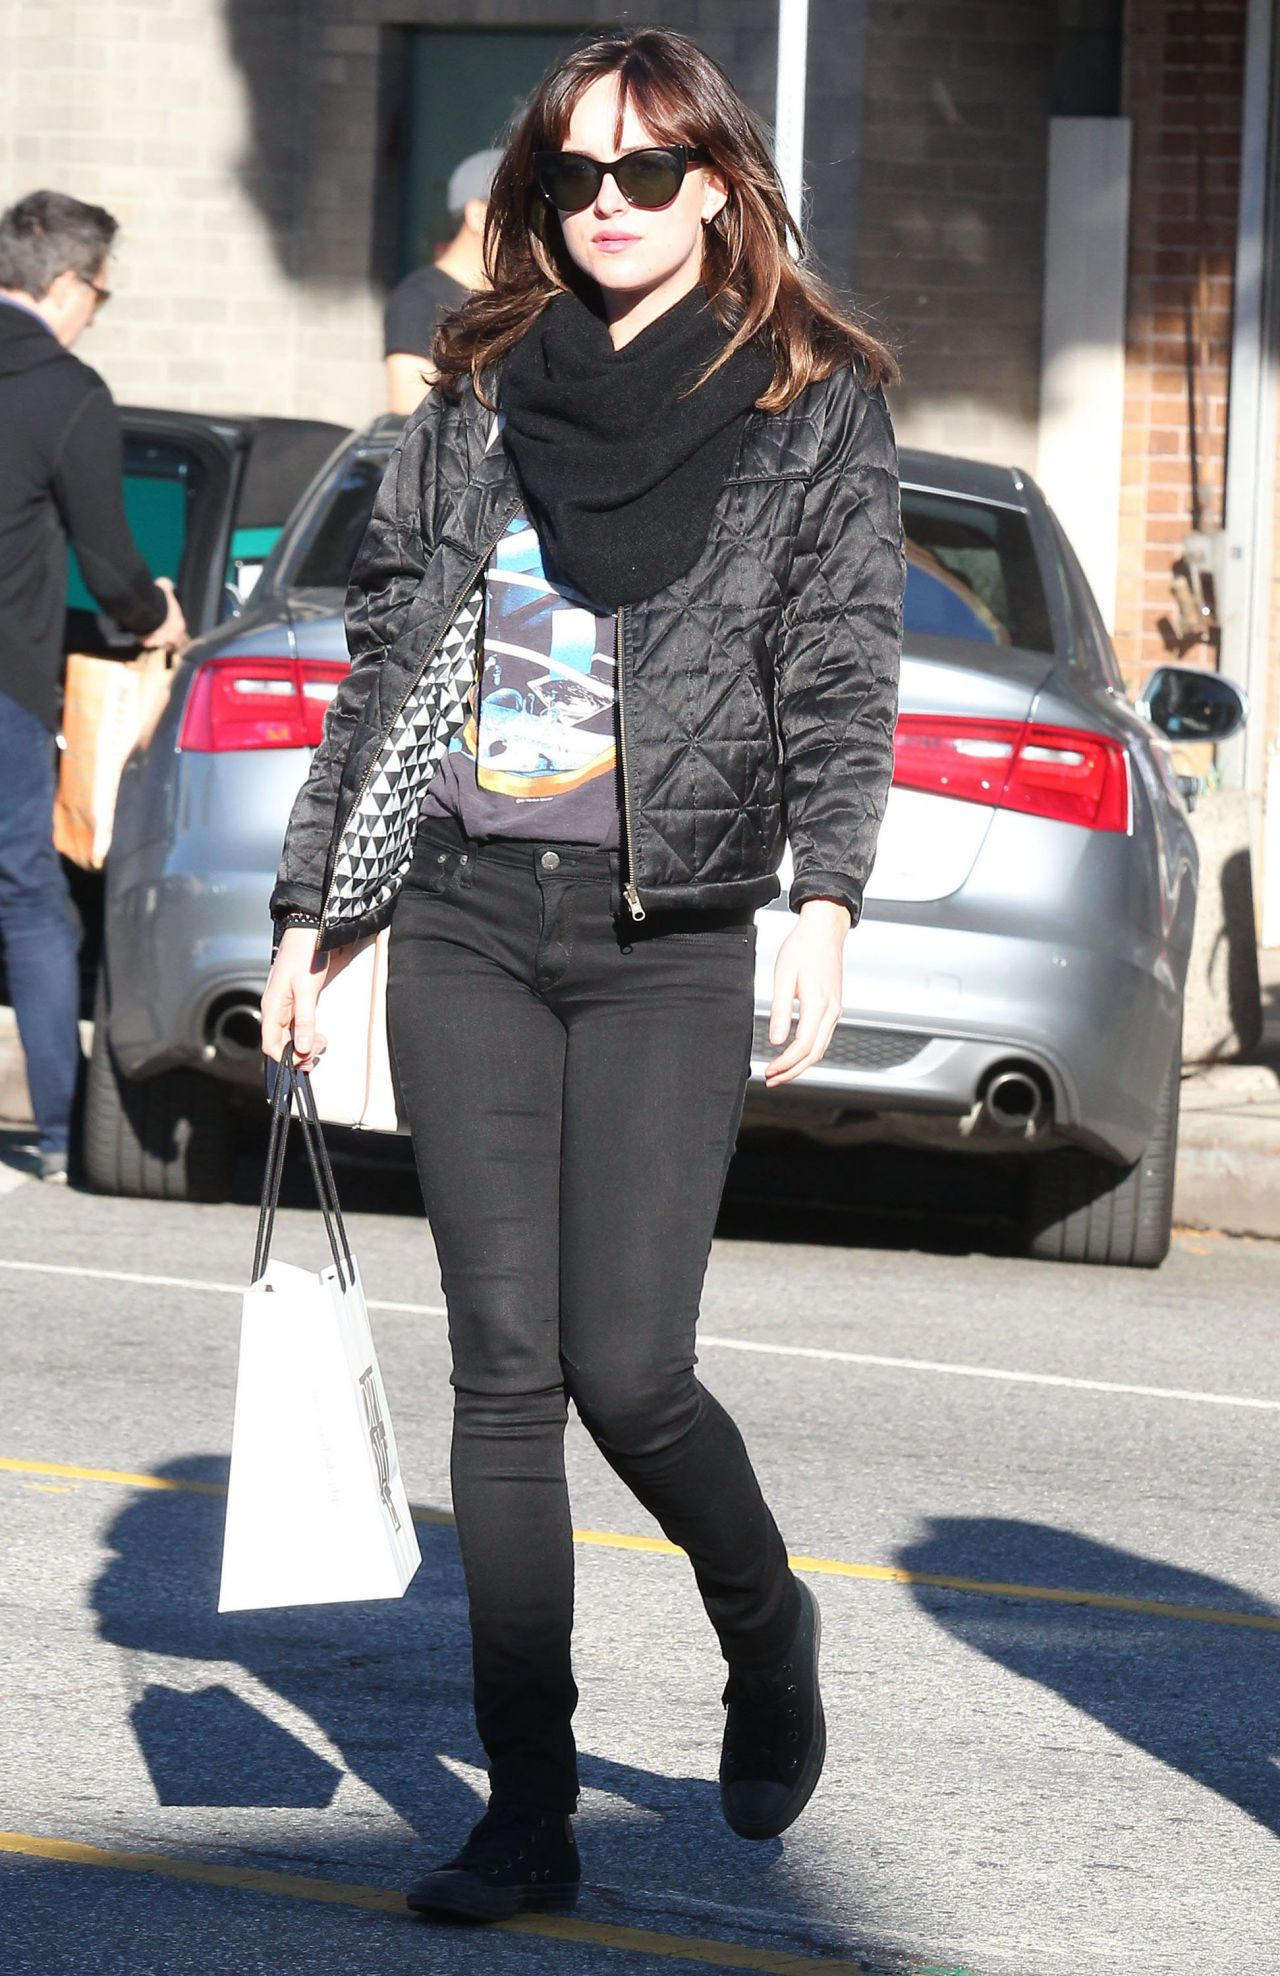 Dakota Johnson Street Style - Shopping in Los Angeles, Dec. 2014